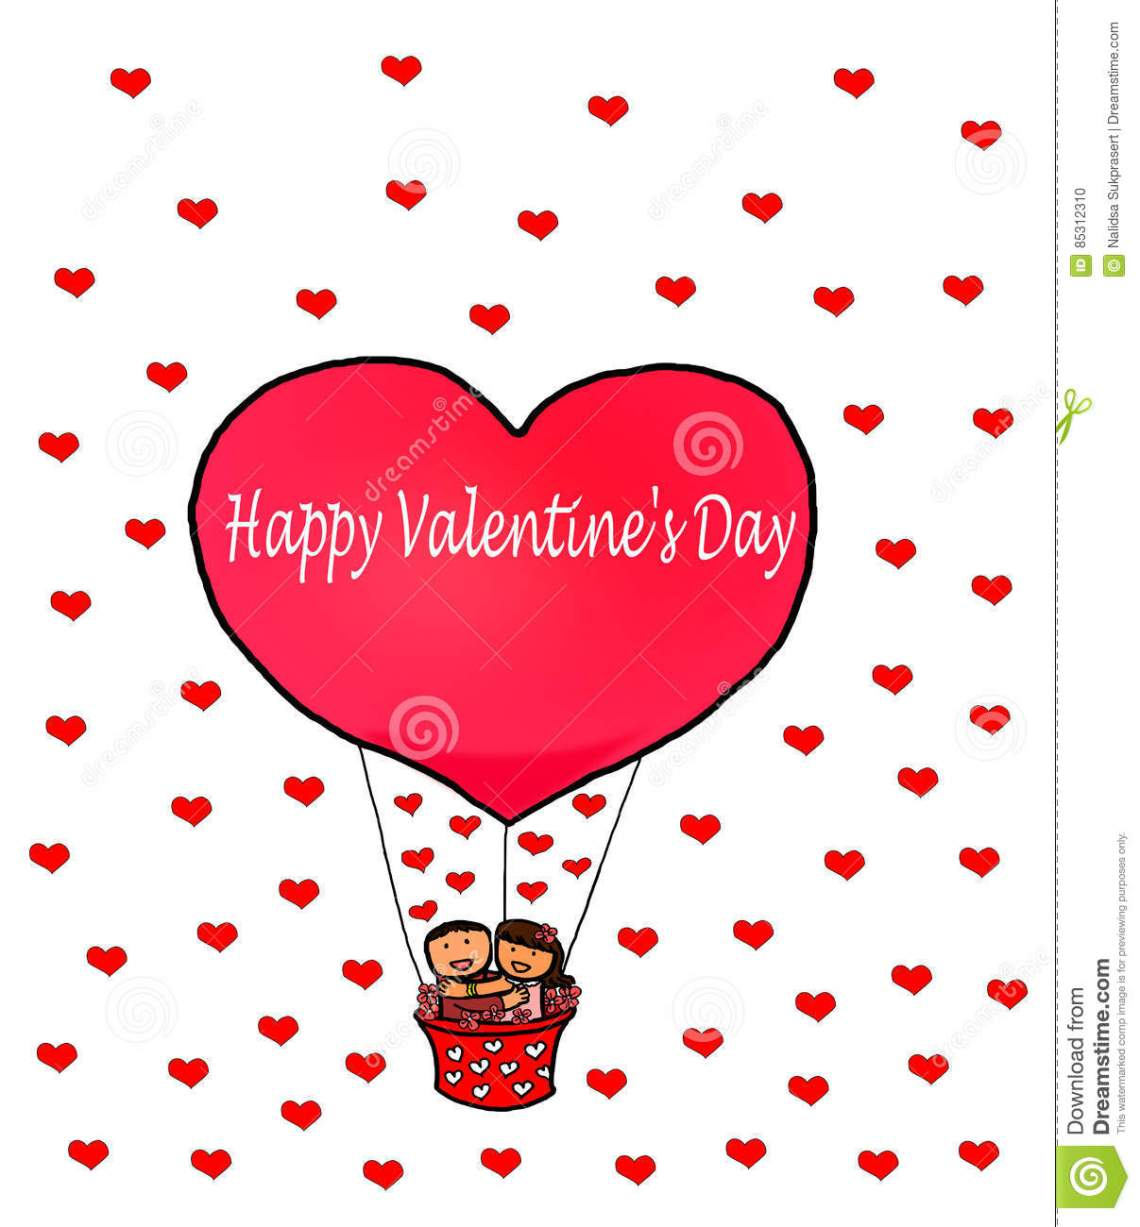 Download Love Couple Happy Valentine`s Red Heart Balloon Stock ...